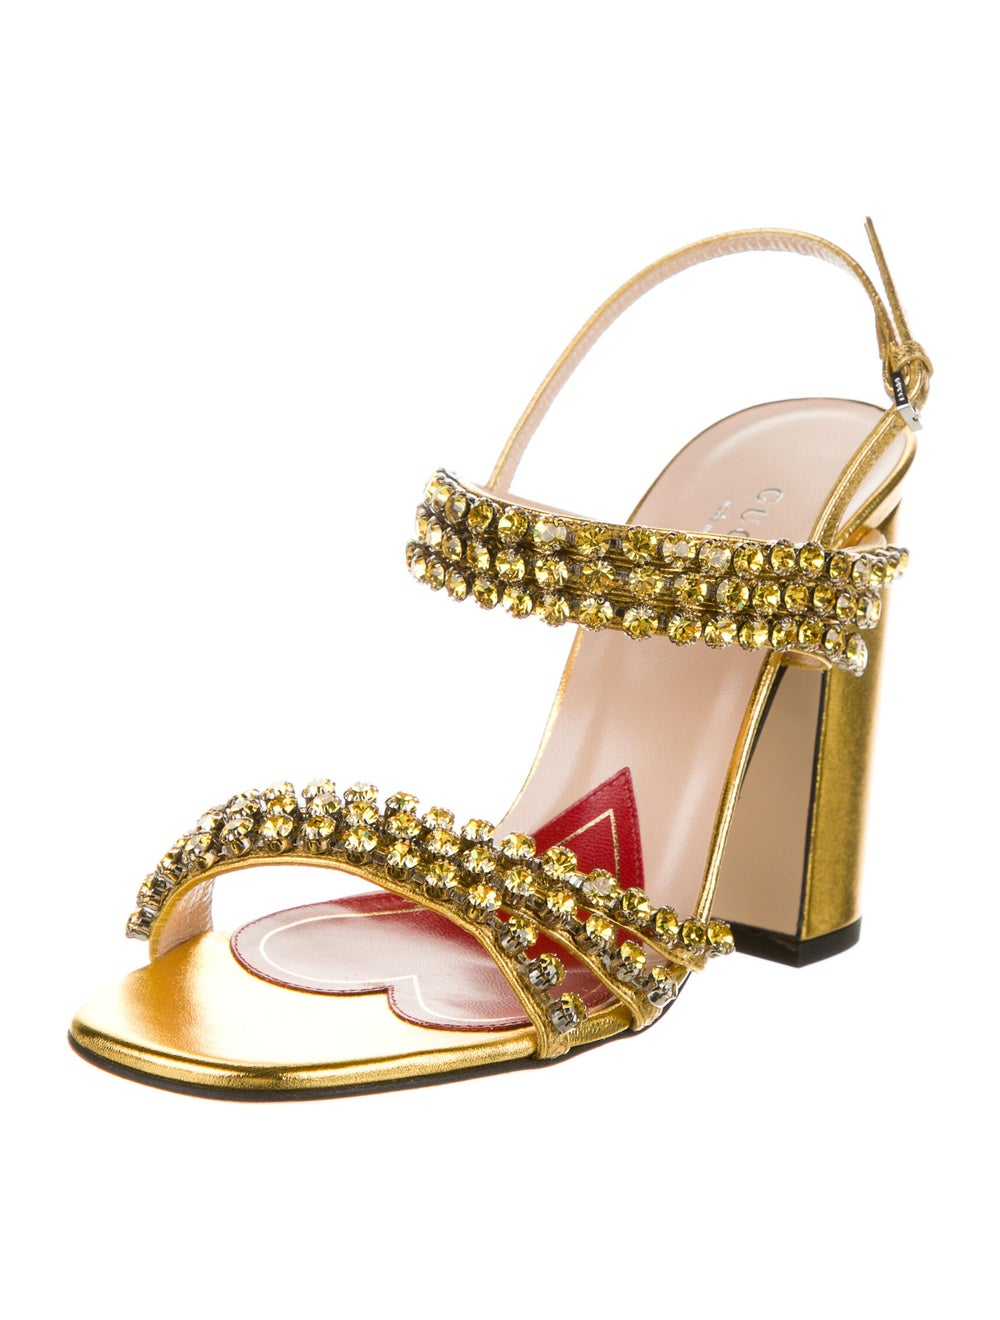 Gucci Leather Crystal Embellishments Sandals Gold - image 2